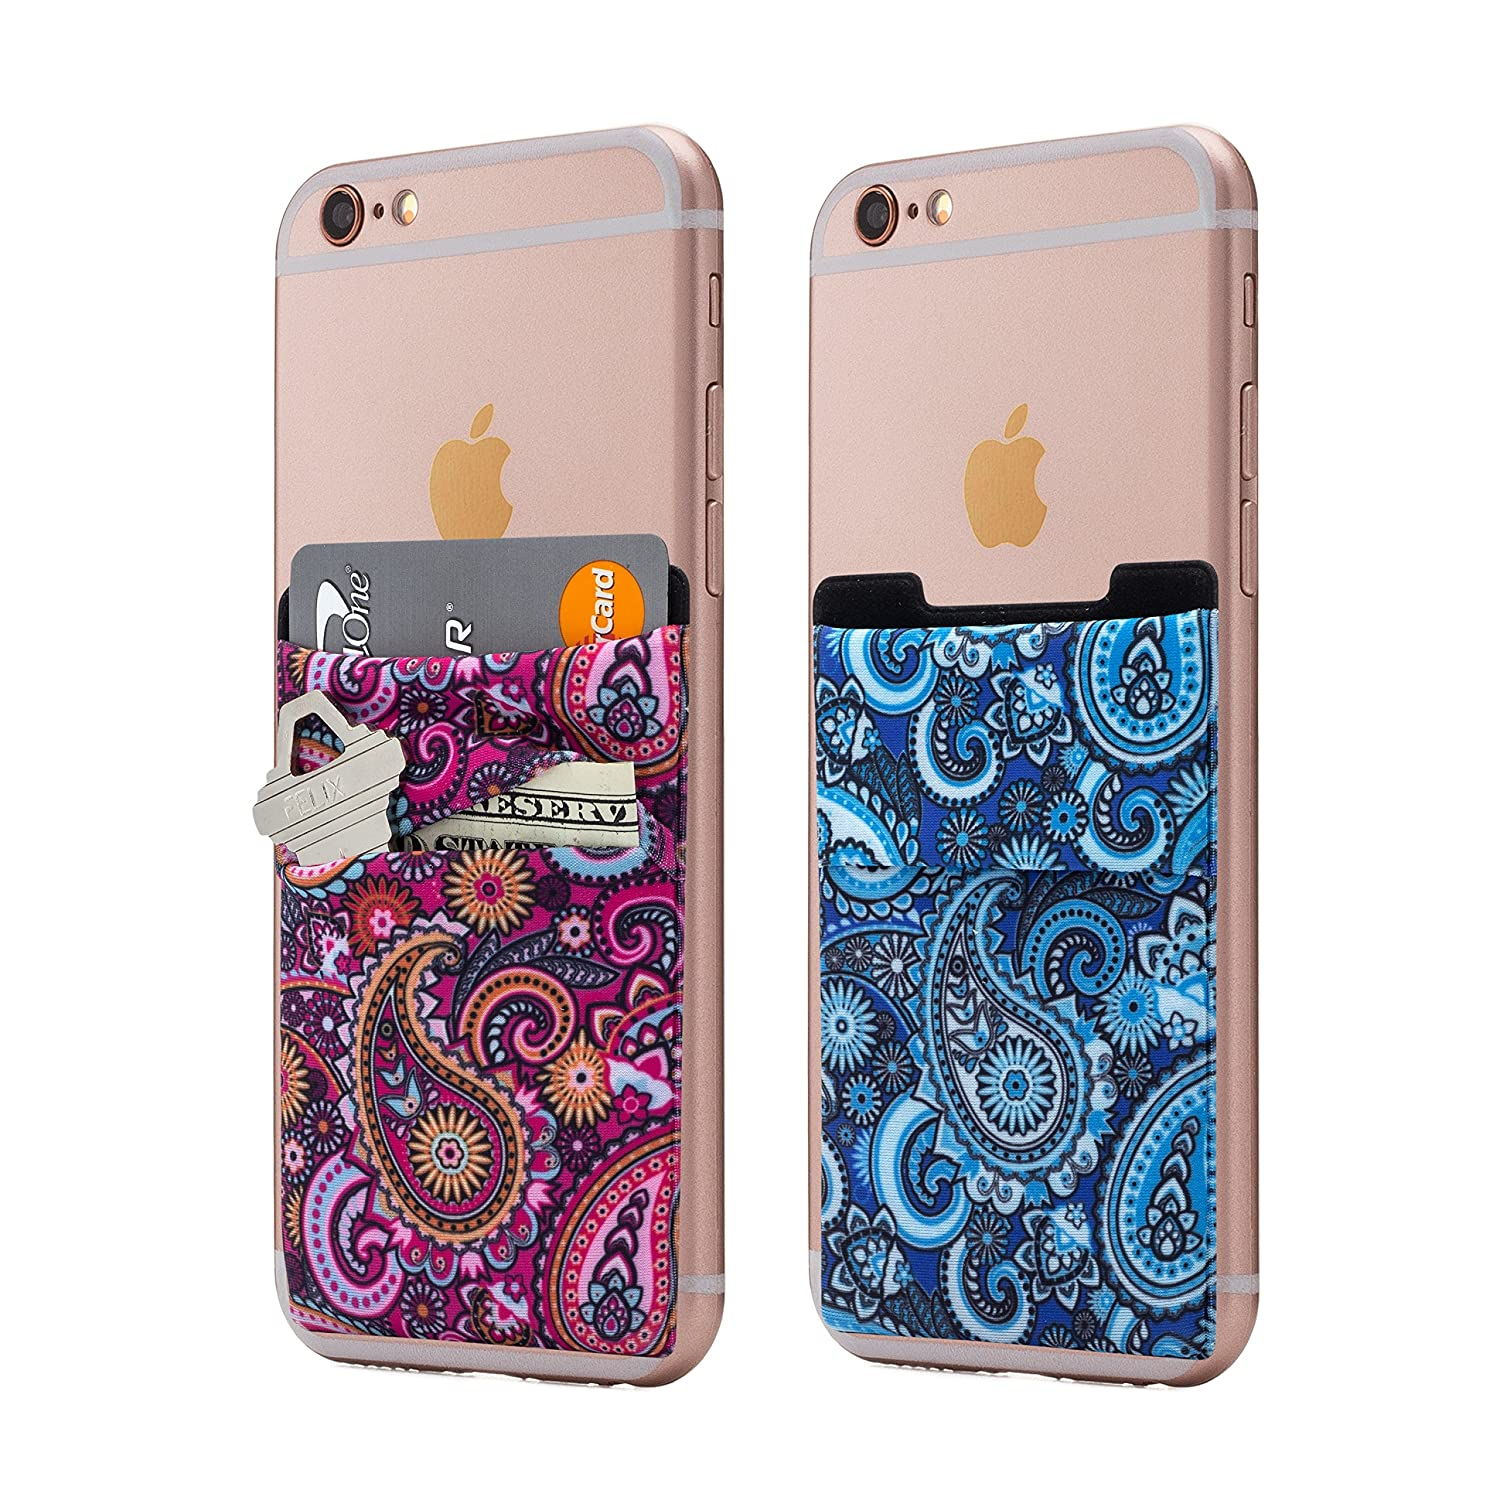 (Two) Stretchy Cell Phone Stick On Wallet Card Holder Phone Pocket For iPhone, Android and all smartphones. (Paisley) Cardly